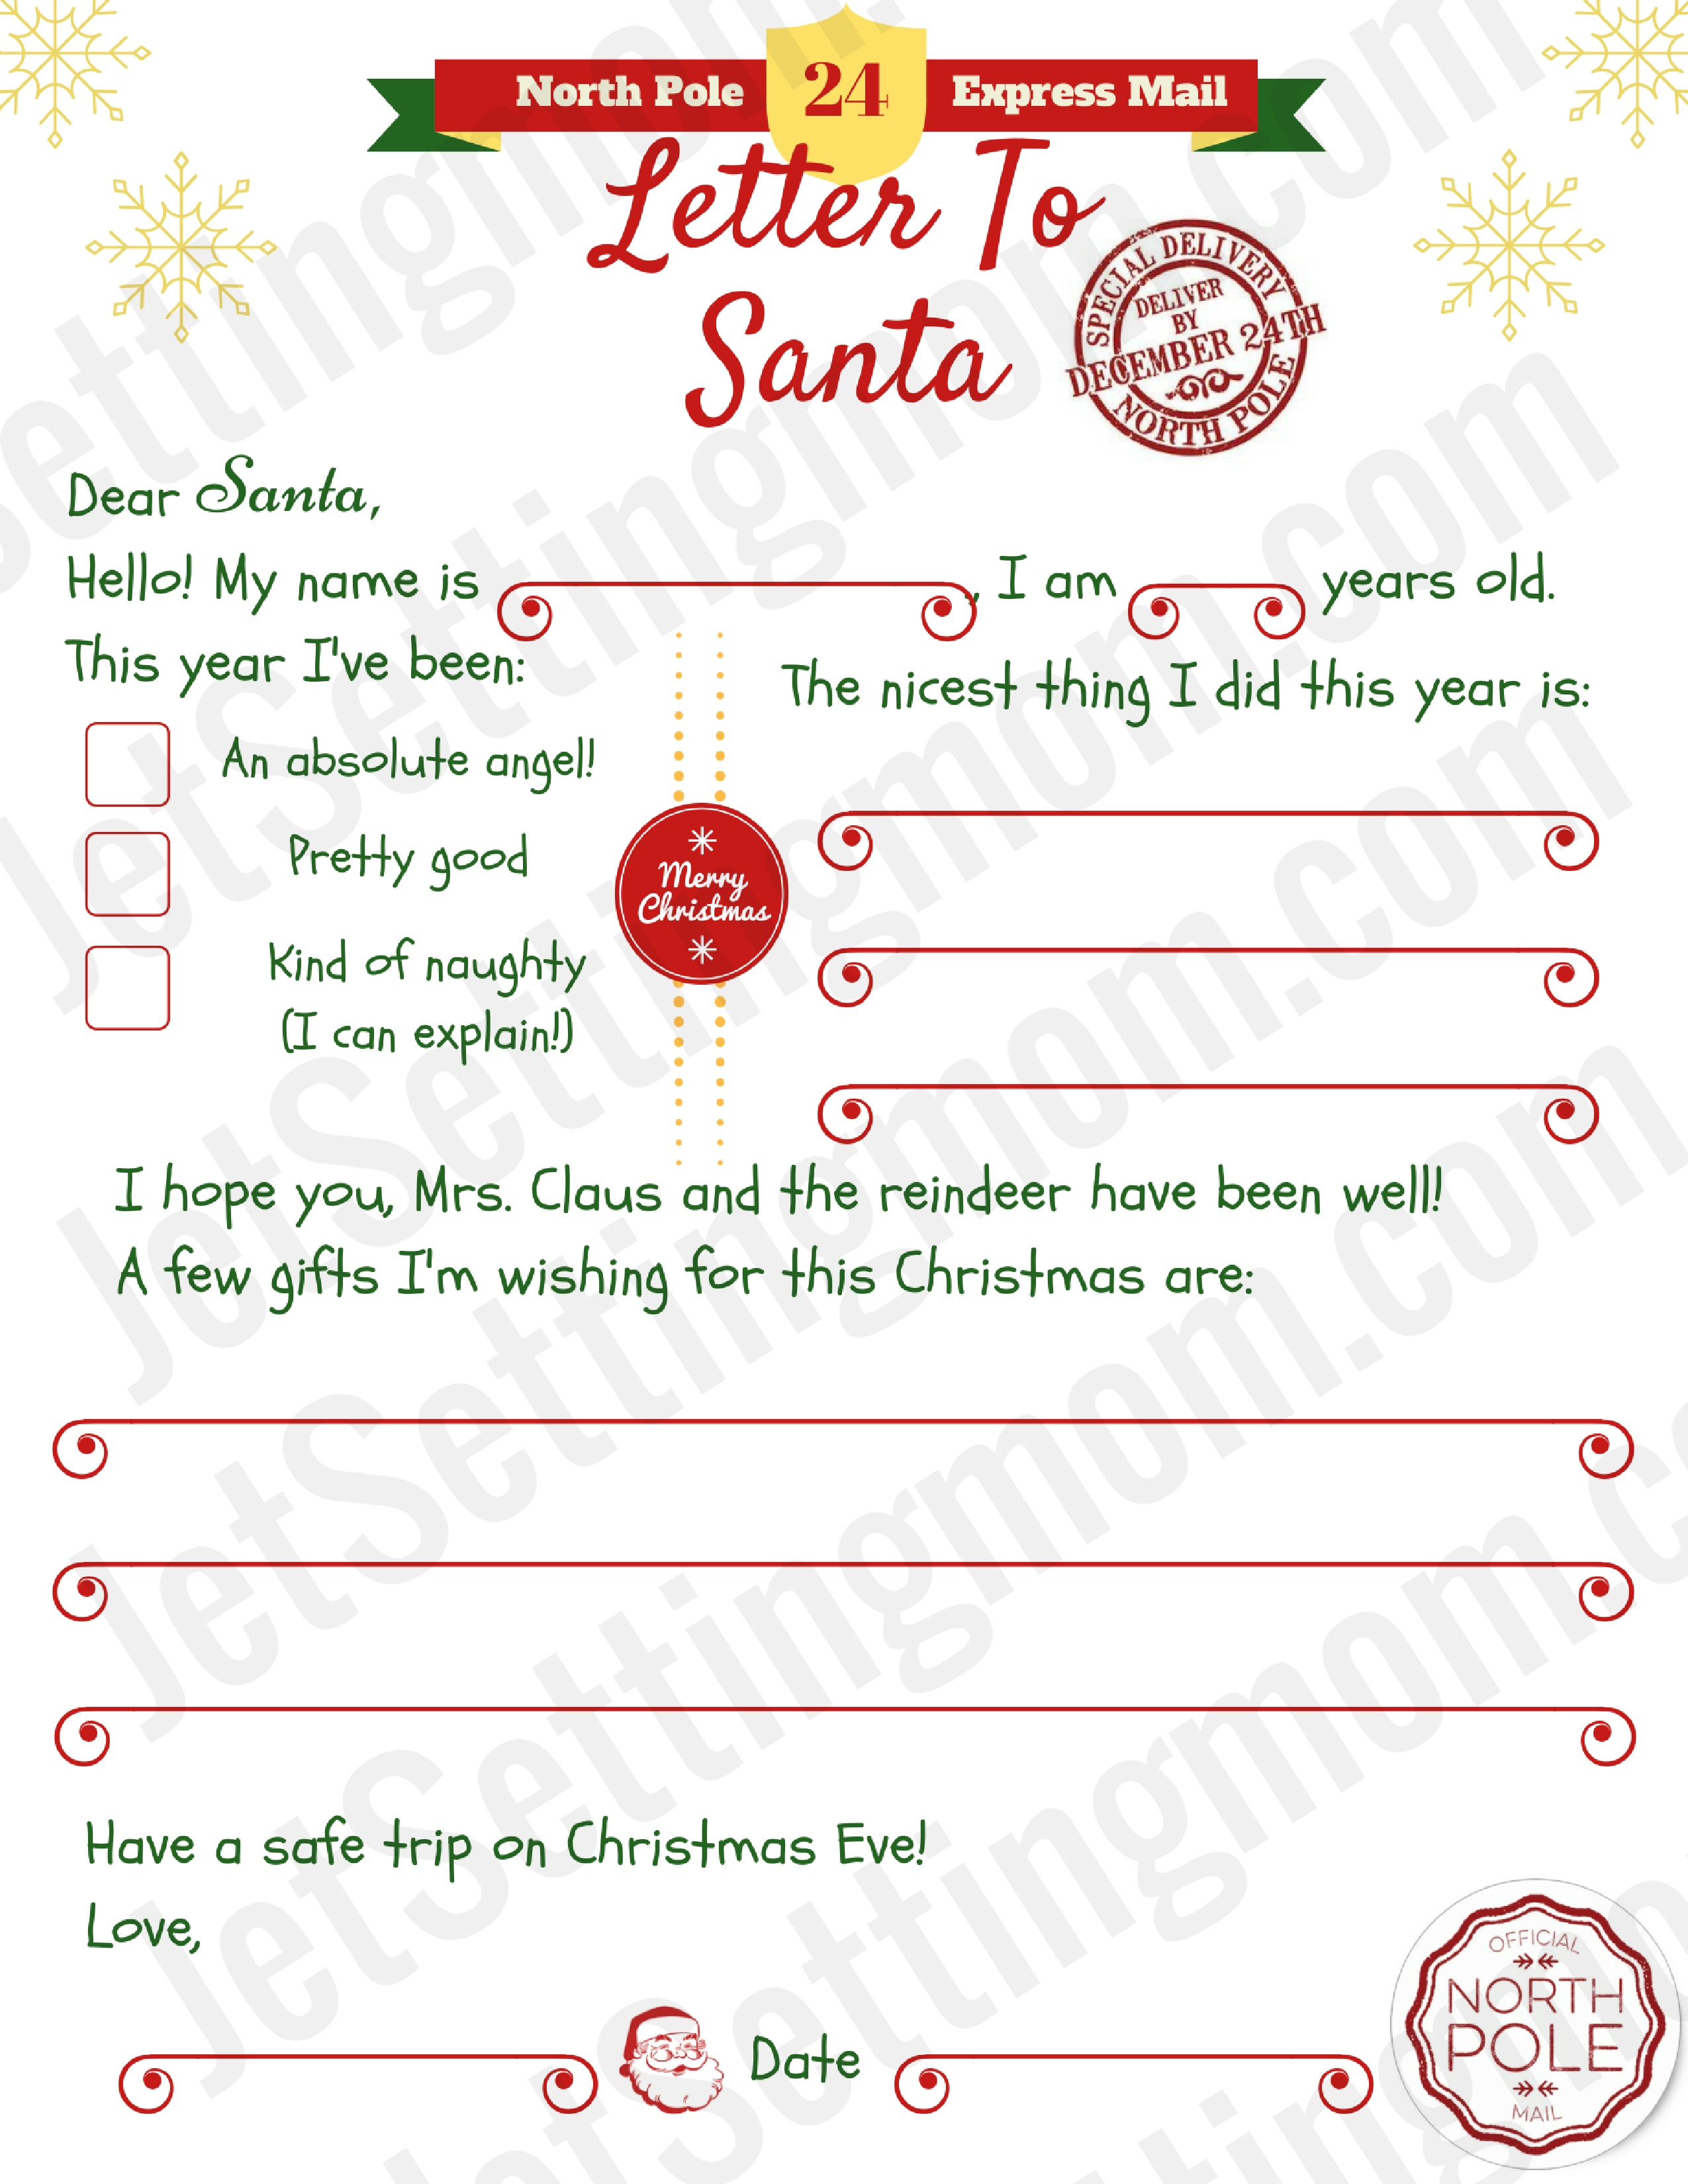 Free Printable Letter to Santa Template   Writing To Santa Made Easy!